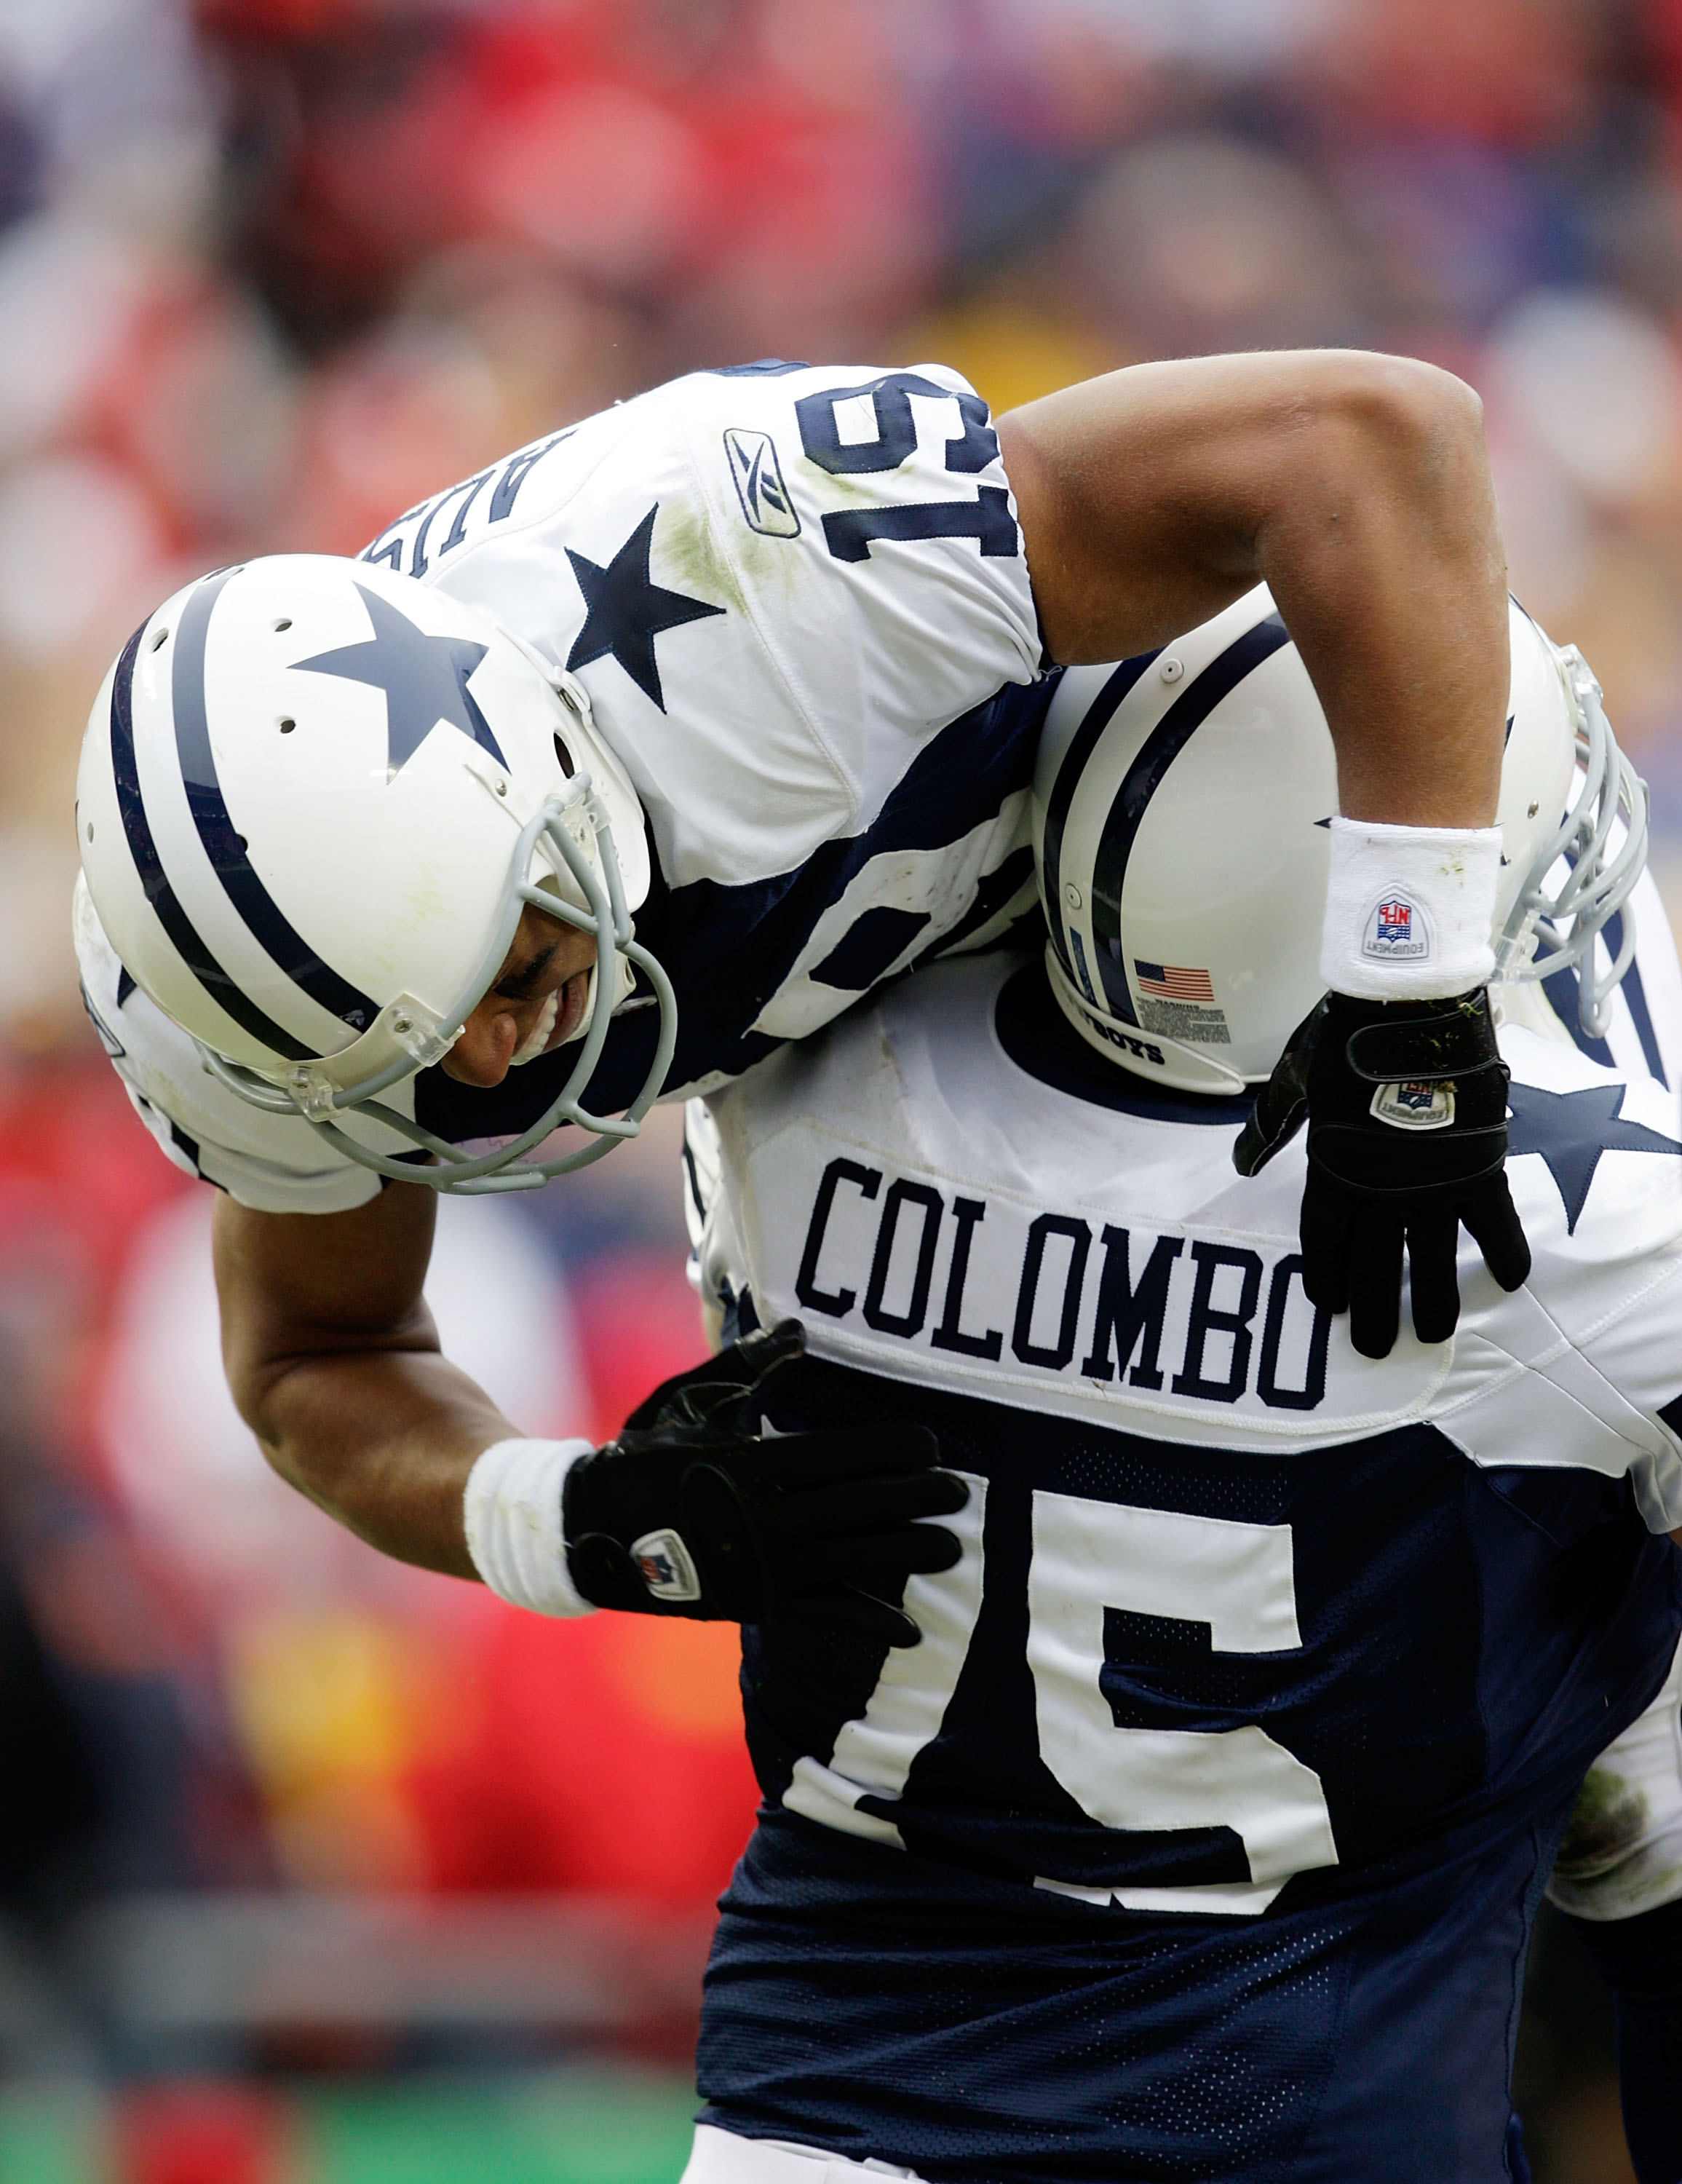 KANSAS CITY, MO - OCTOBER 11:  Miles Austin #19 of the Dallas Cowboys celebrates a touchdown as he is lifted up by Marc Columbo #75 during the game against the Kansas City Chiefs on October 11, 2009 at Arrowhead Stadiumin Kansas City, Missouri.  (Photo by